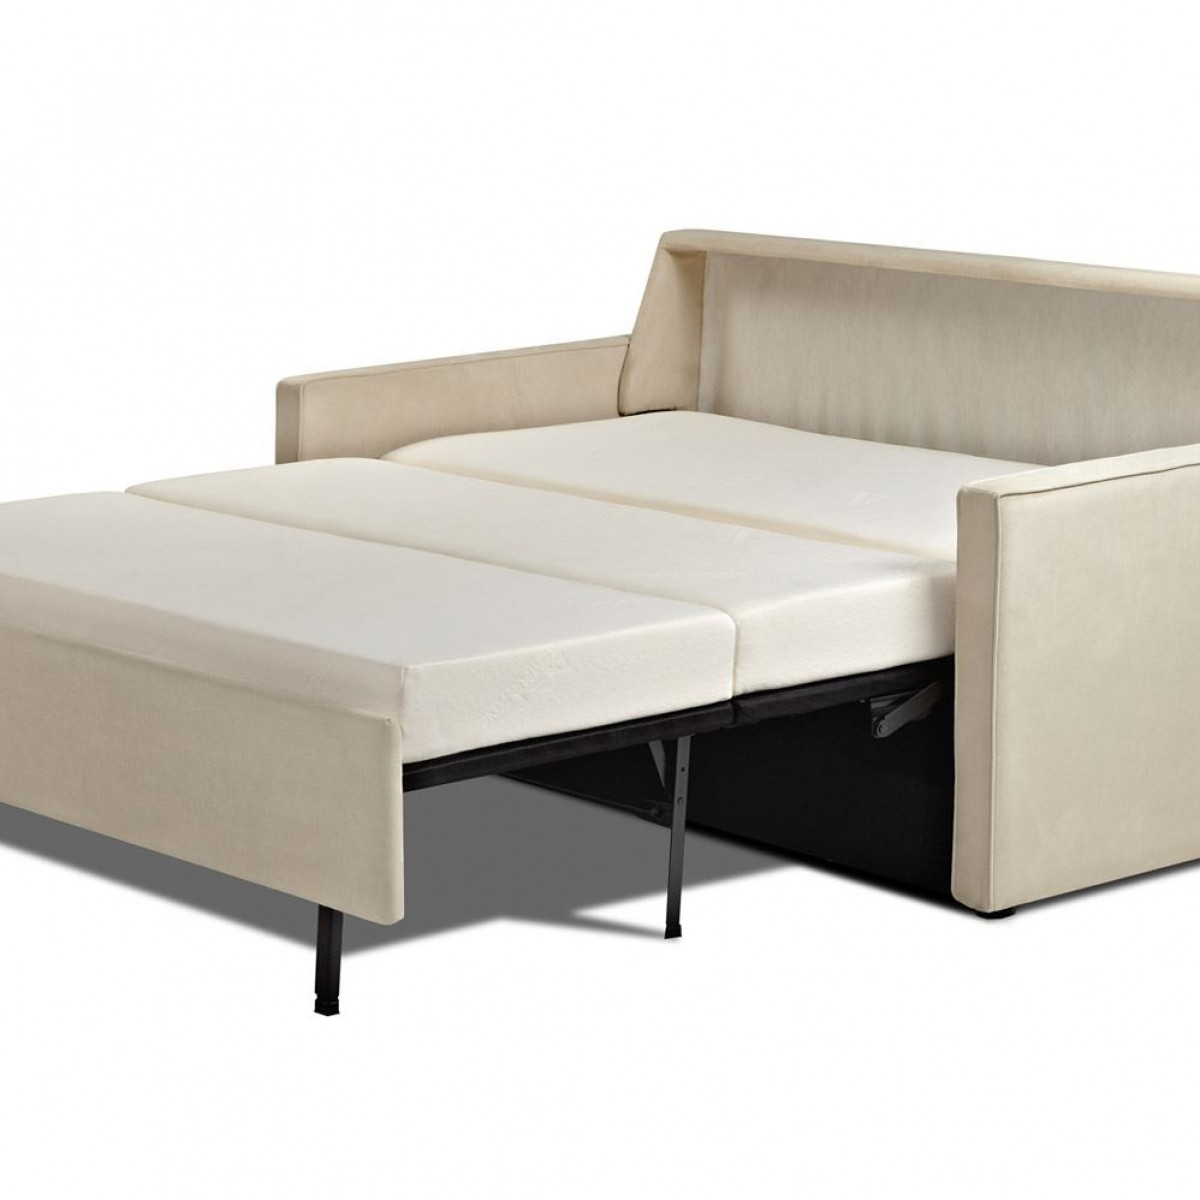 Tips to consider when buying a sofa bed mattress 5 tips for Tips on buying a mattress